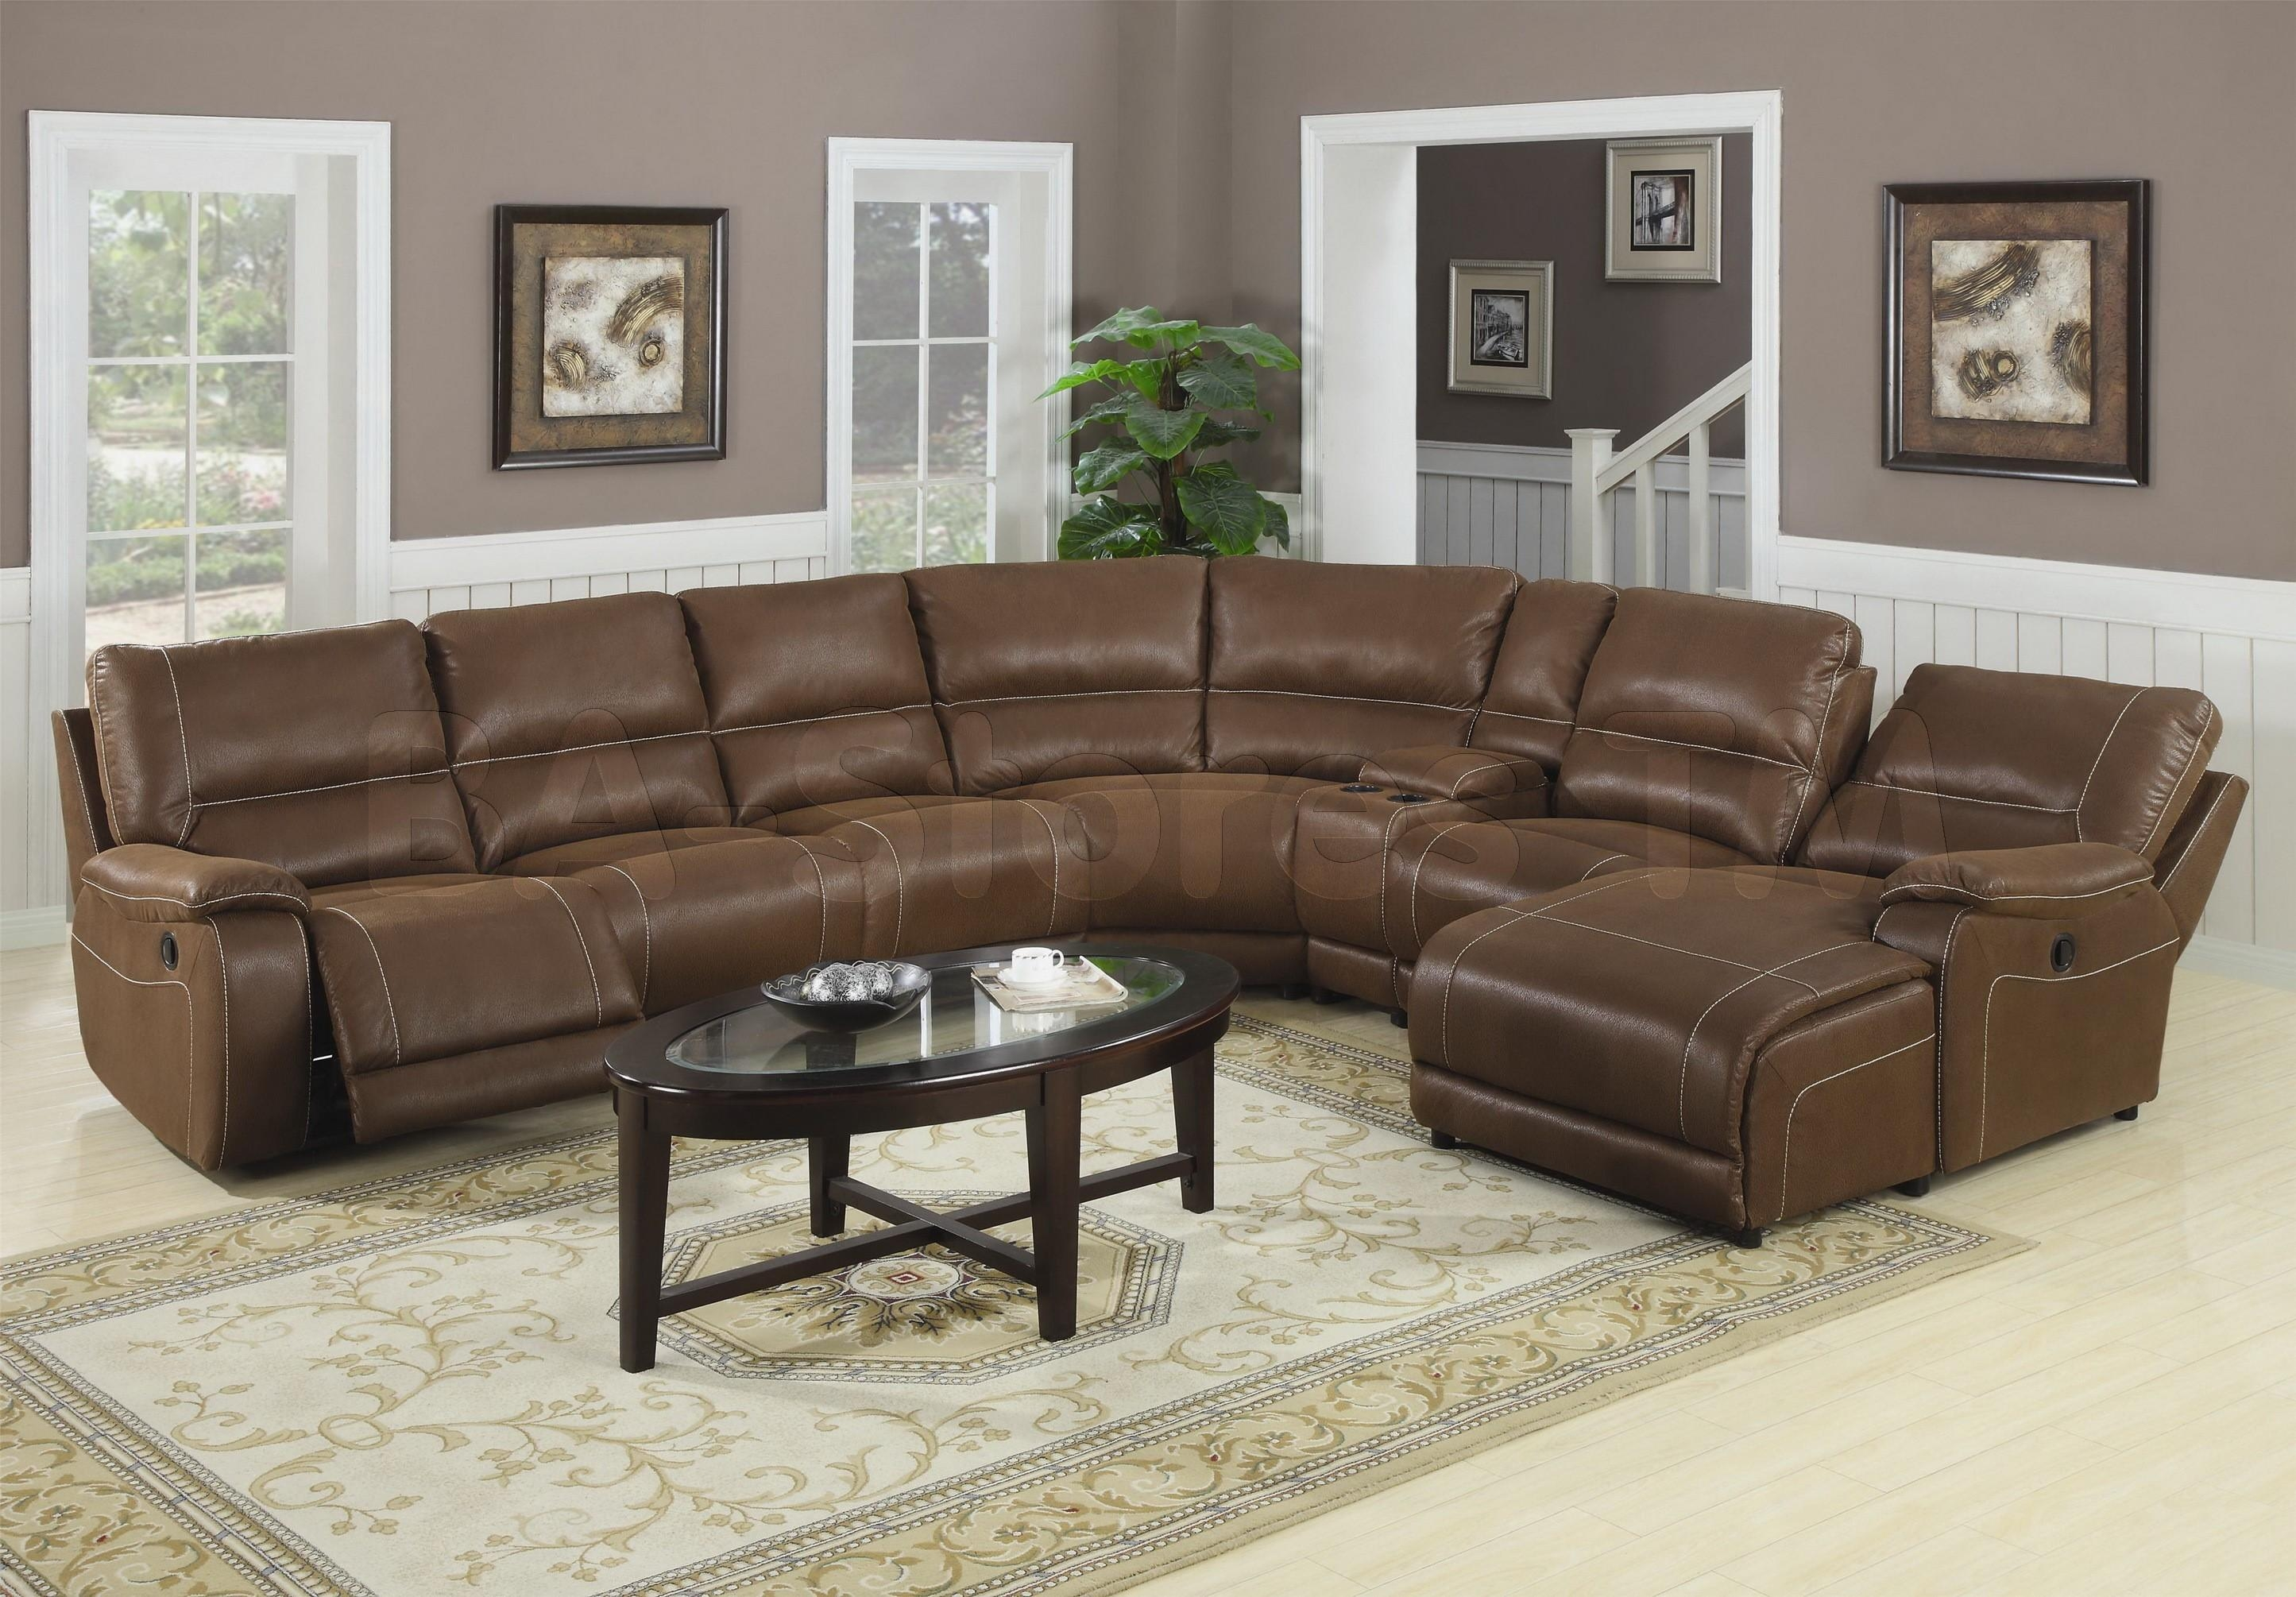 Extra Large Sectional Sofas With Chaise G Home Design For Large Microfiber Sectional (Image 2 of 20)